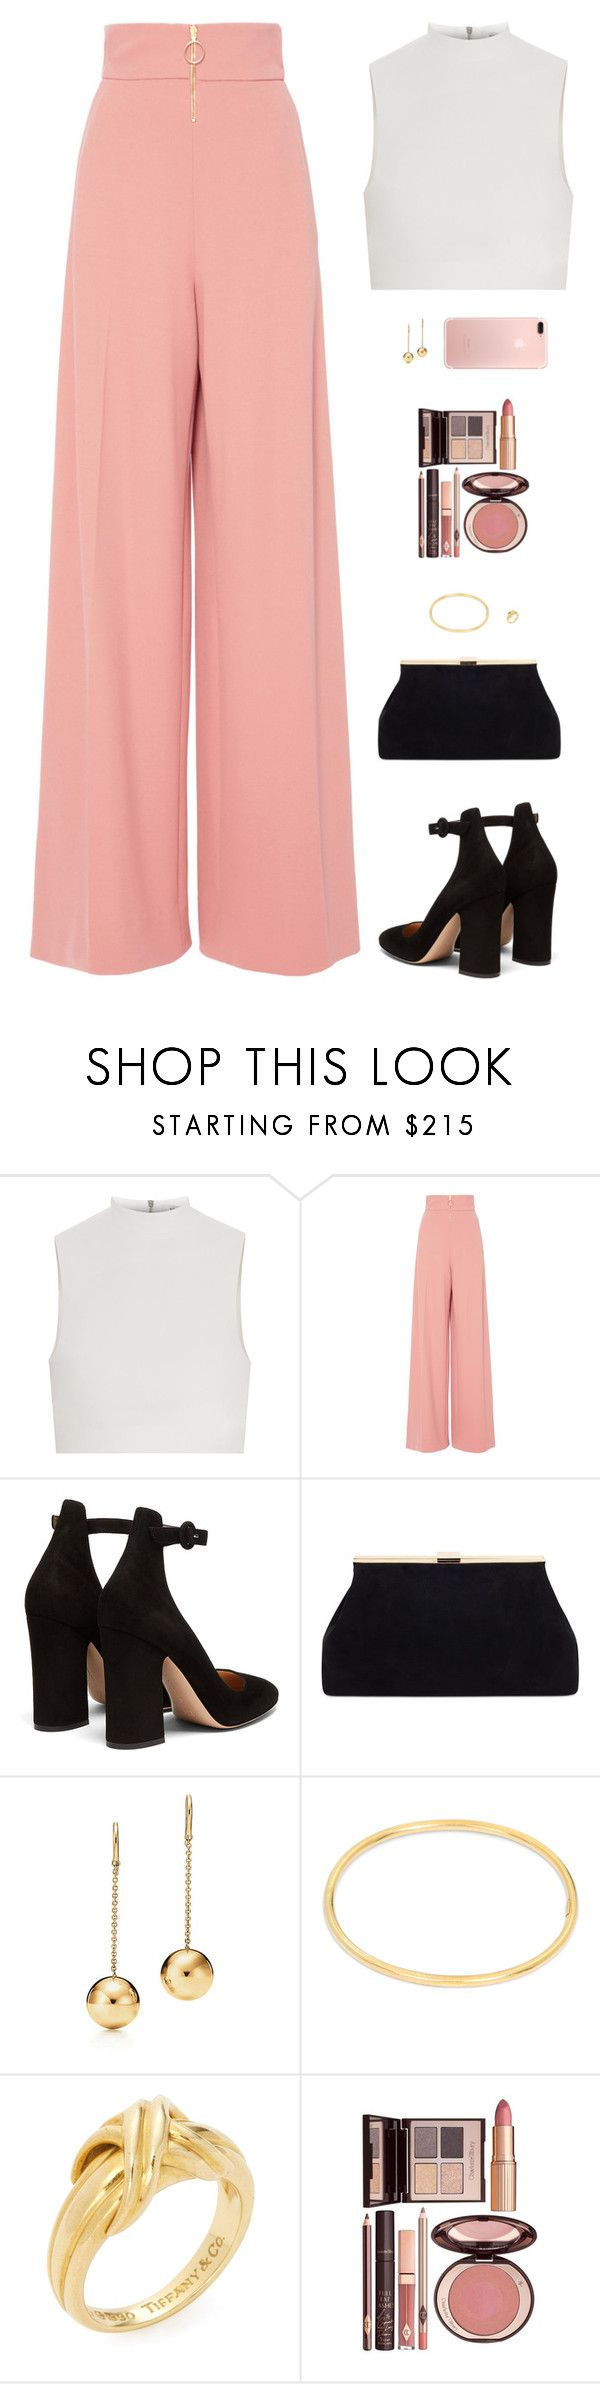 """Sin título #4777"" by mdmsb on Polyvore featuring moda, Elizabeth and James, Christian Siriano, Gianvito Rossi, Tiffany & Co. y Charlotte Tilbury"